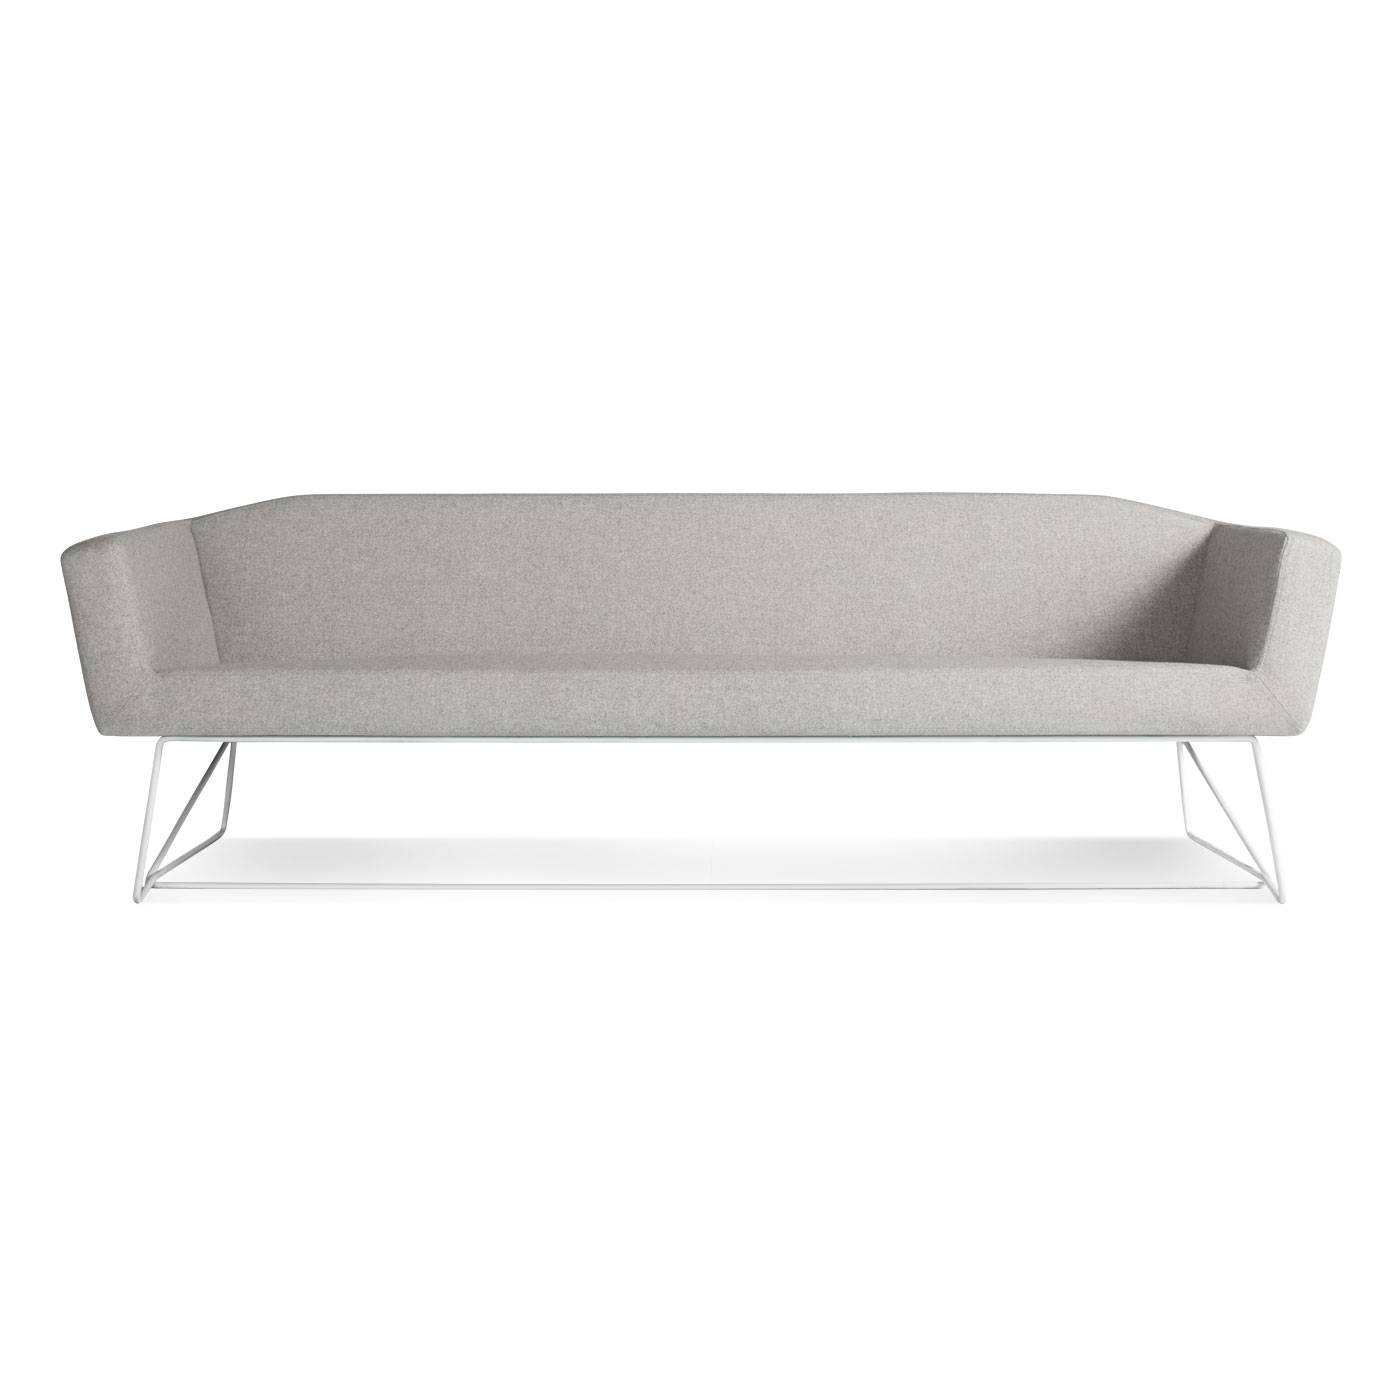 Swept Minimalist Sofa - Simple Modern Sofa | Blu Dot pertaining to Simple Sofas (Image 13 of 15)